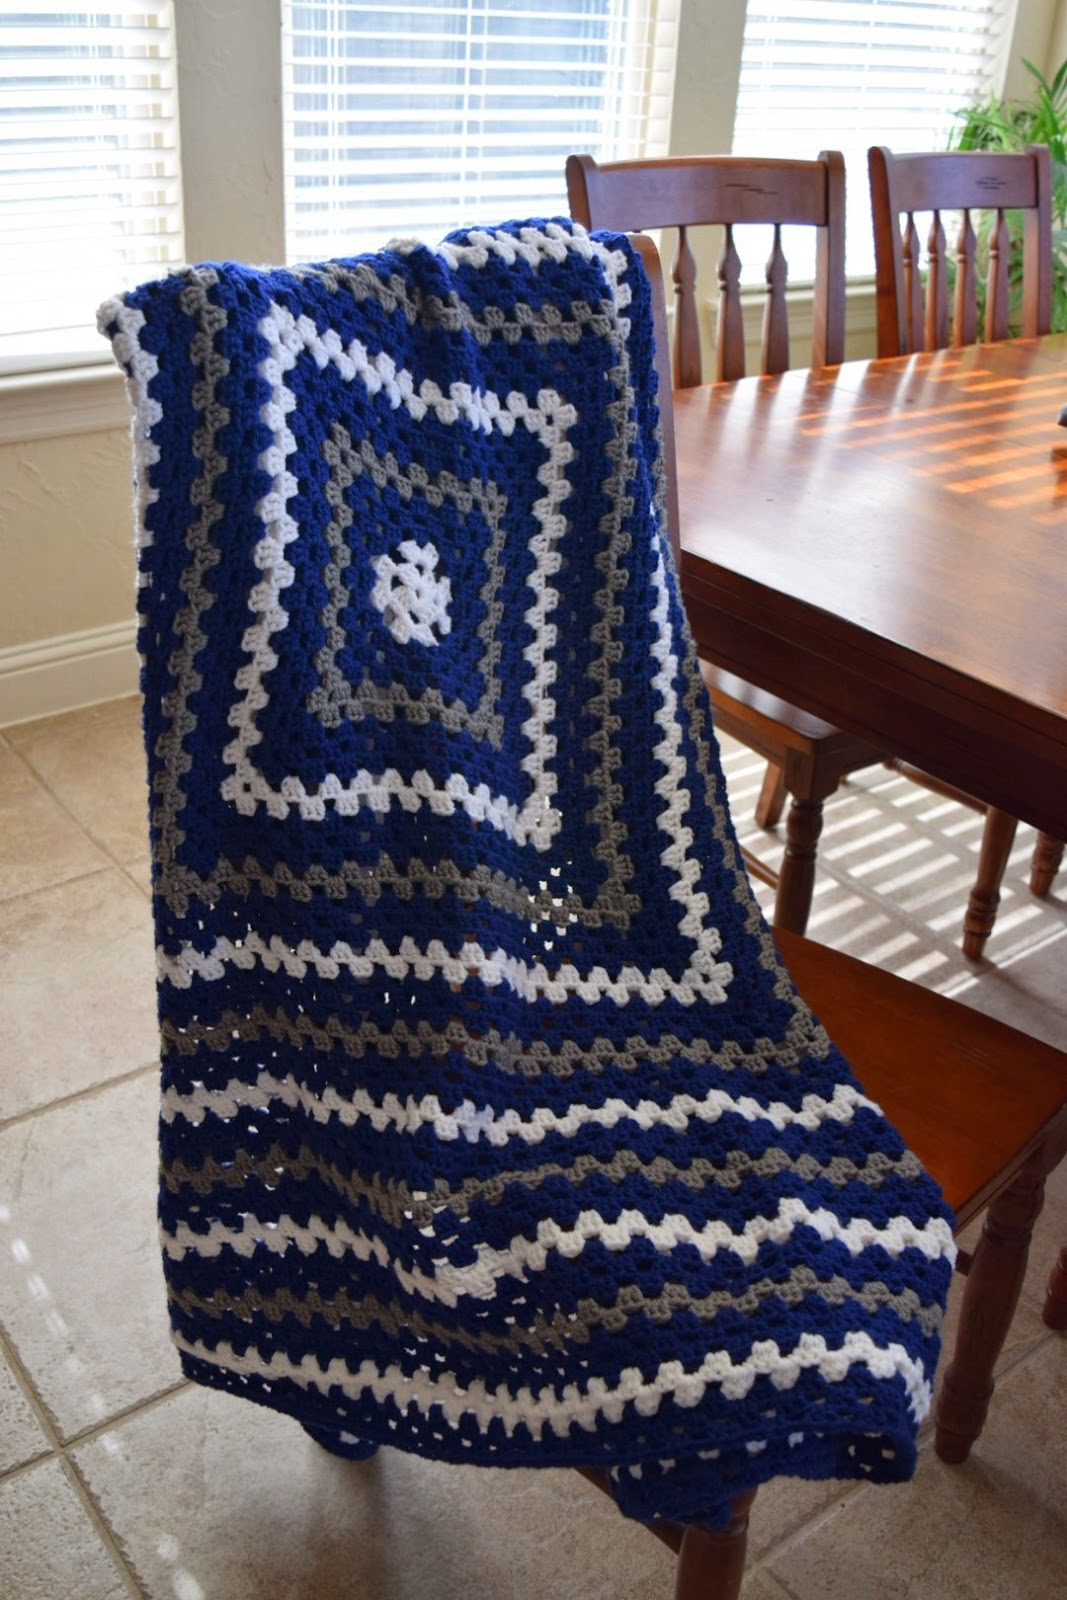 All Things Chateau de Savoy: Crochet Granny Square Lap Blanket in ...